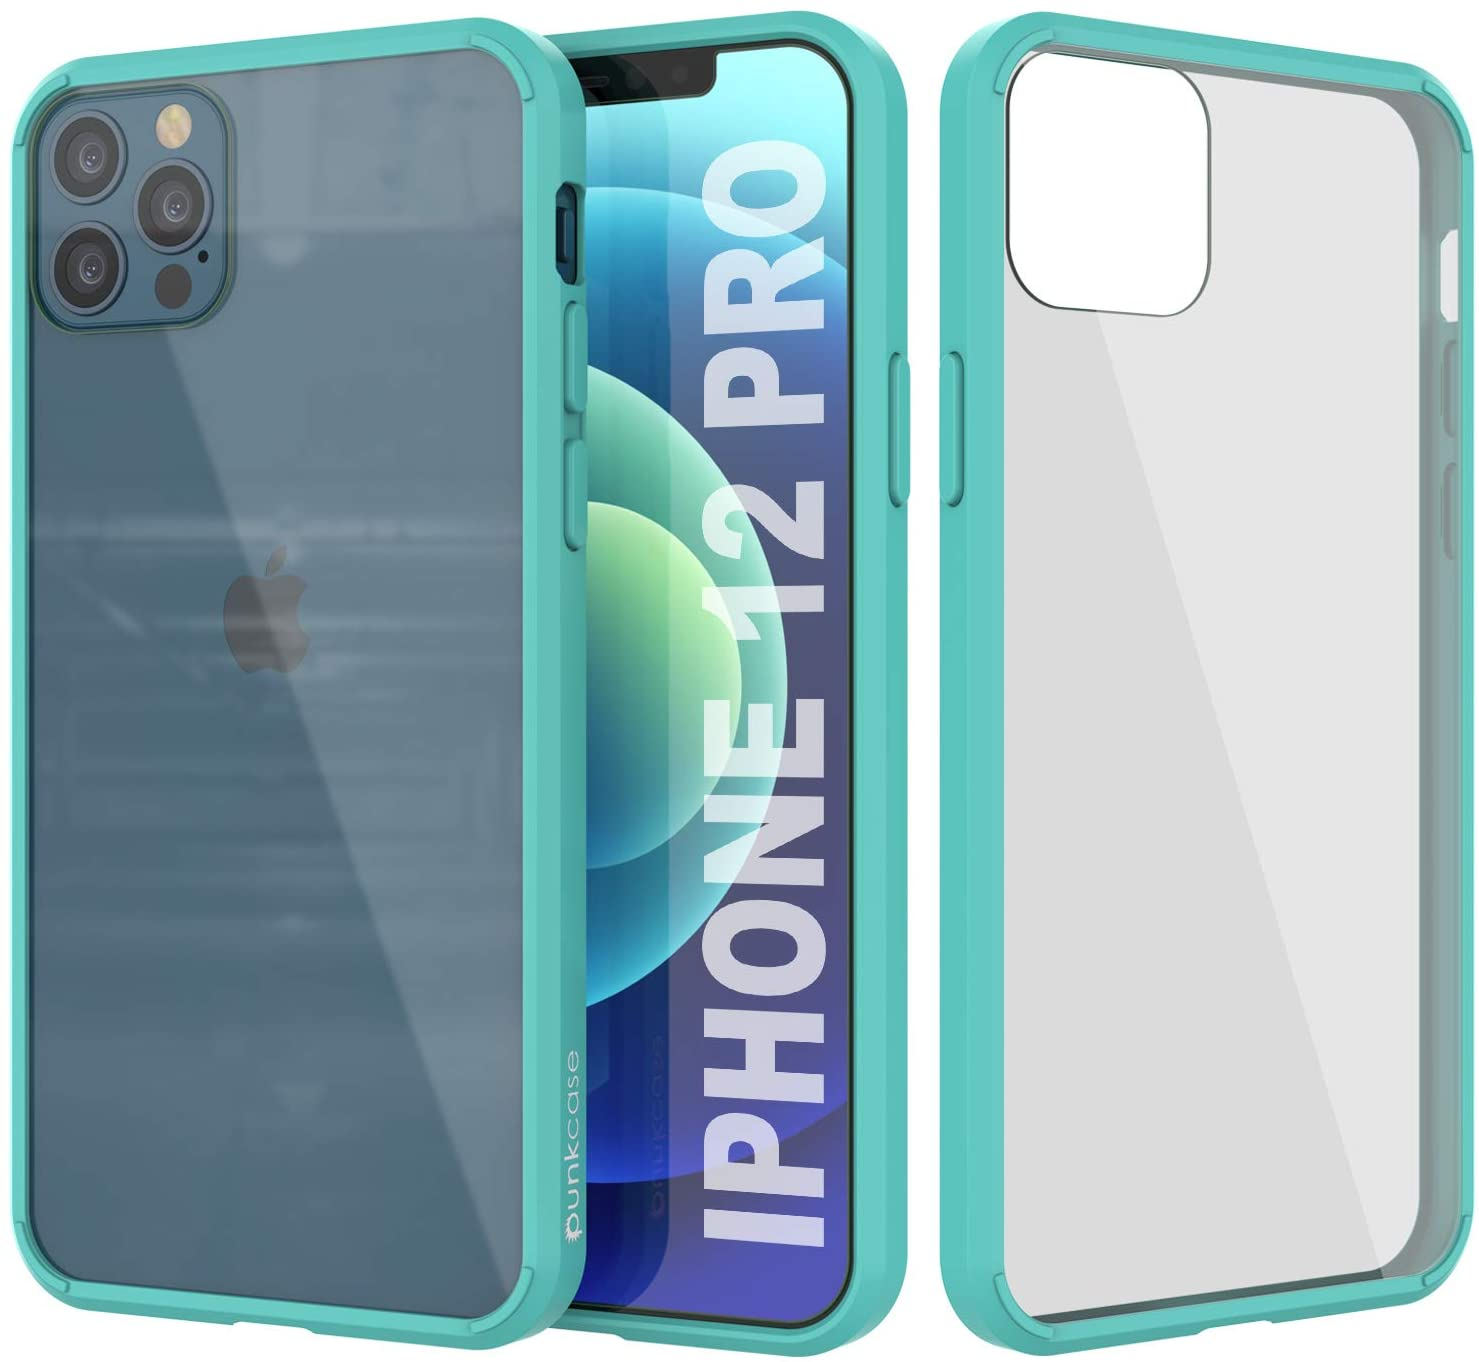 iPhone 12 Pro Case Punkcase® LUCID 2.0 Teal Series w/ PUNK SHIELD Screen Protector | Ultra Fit